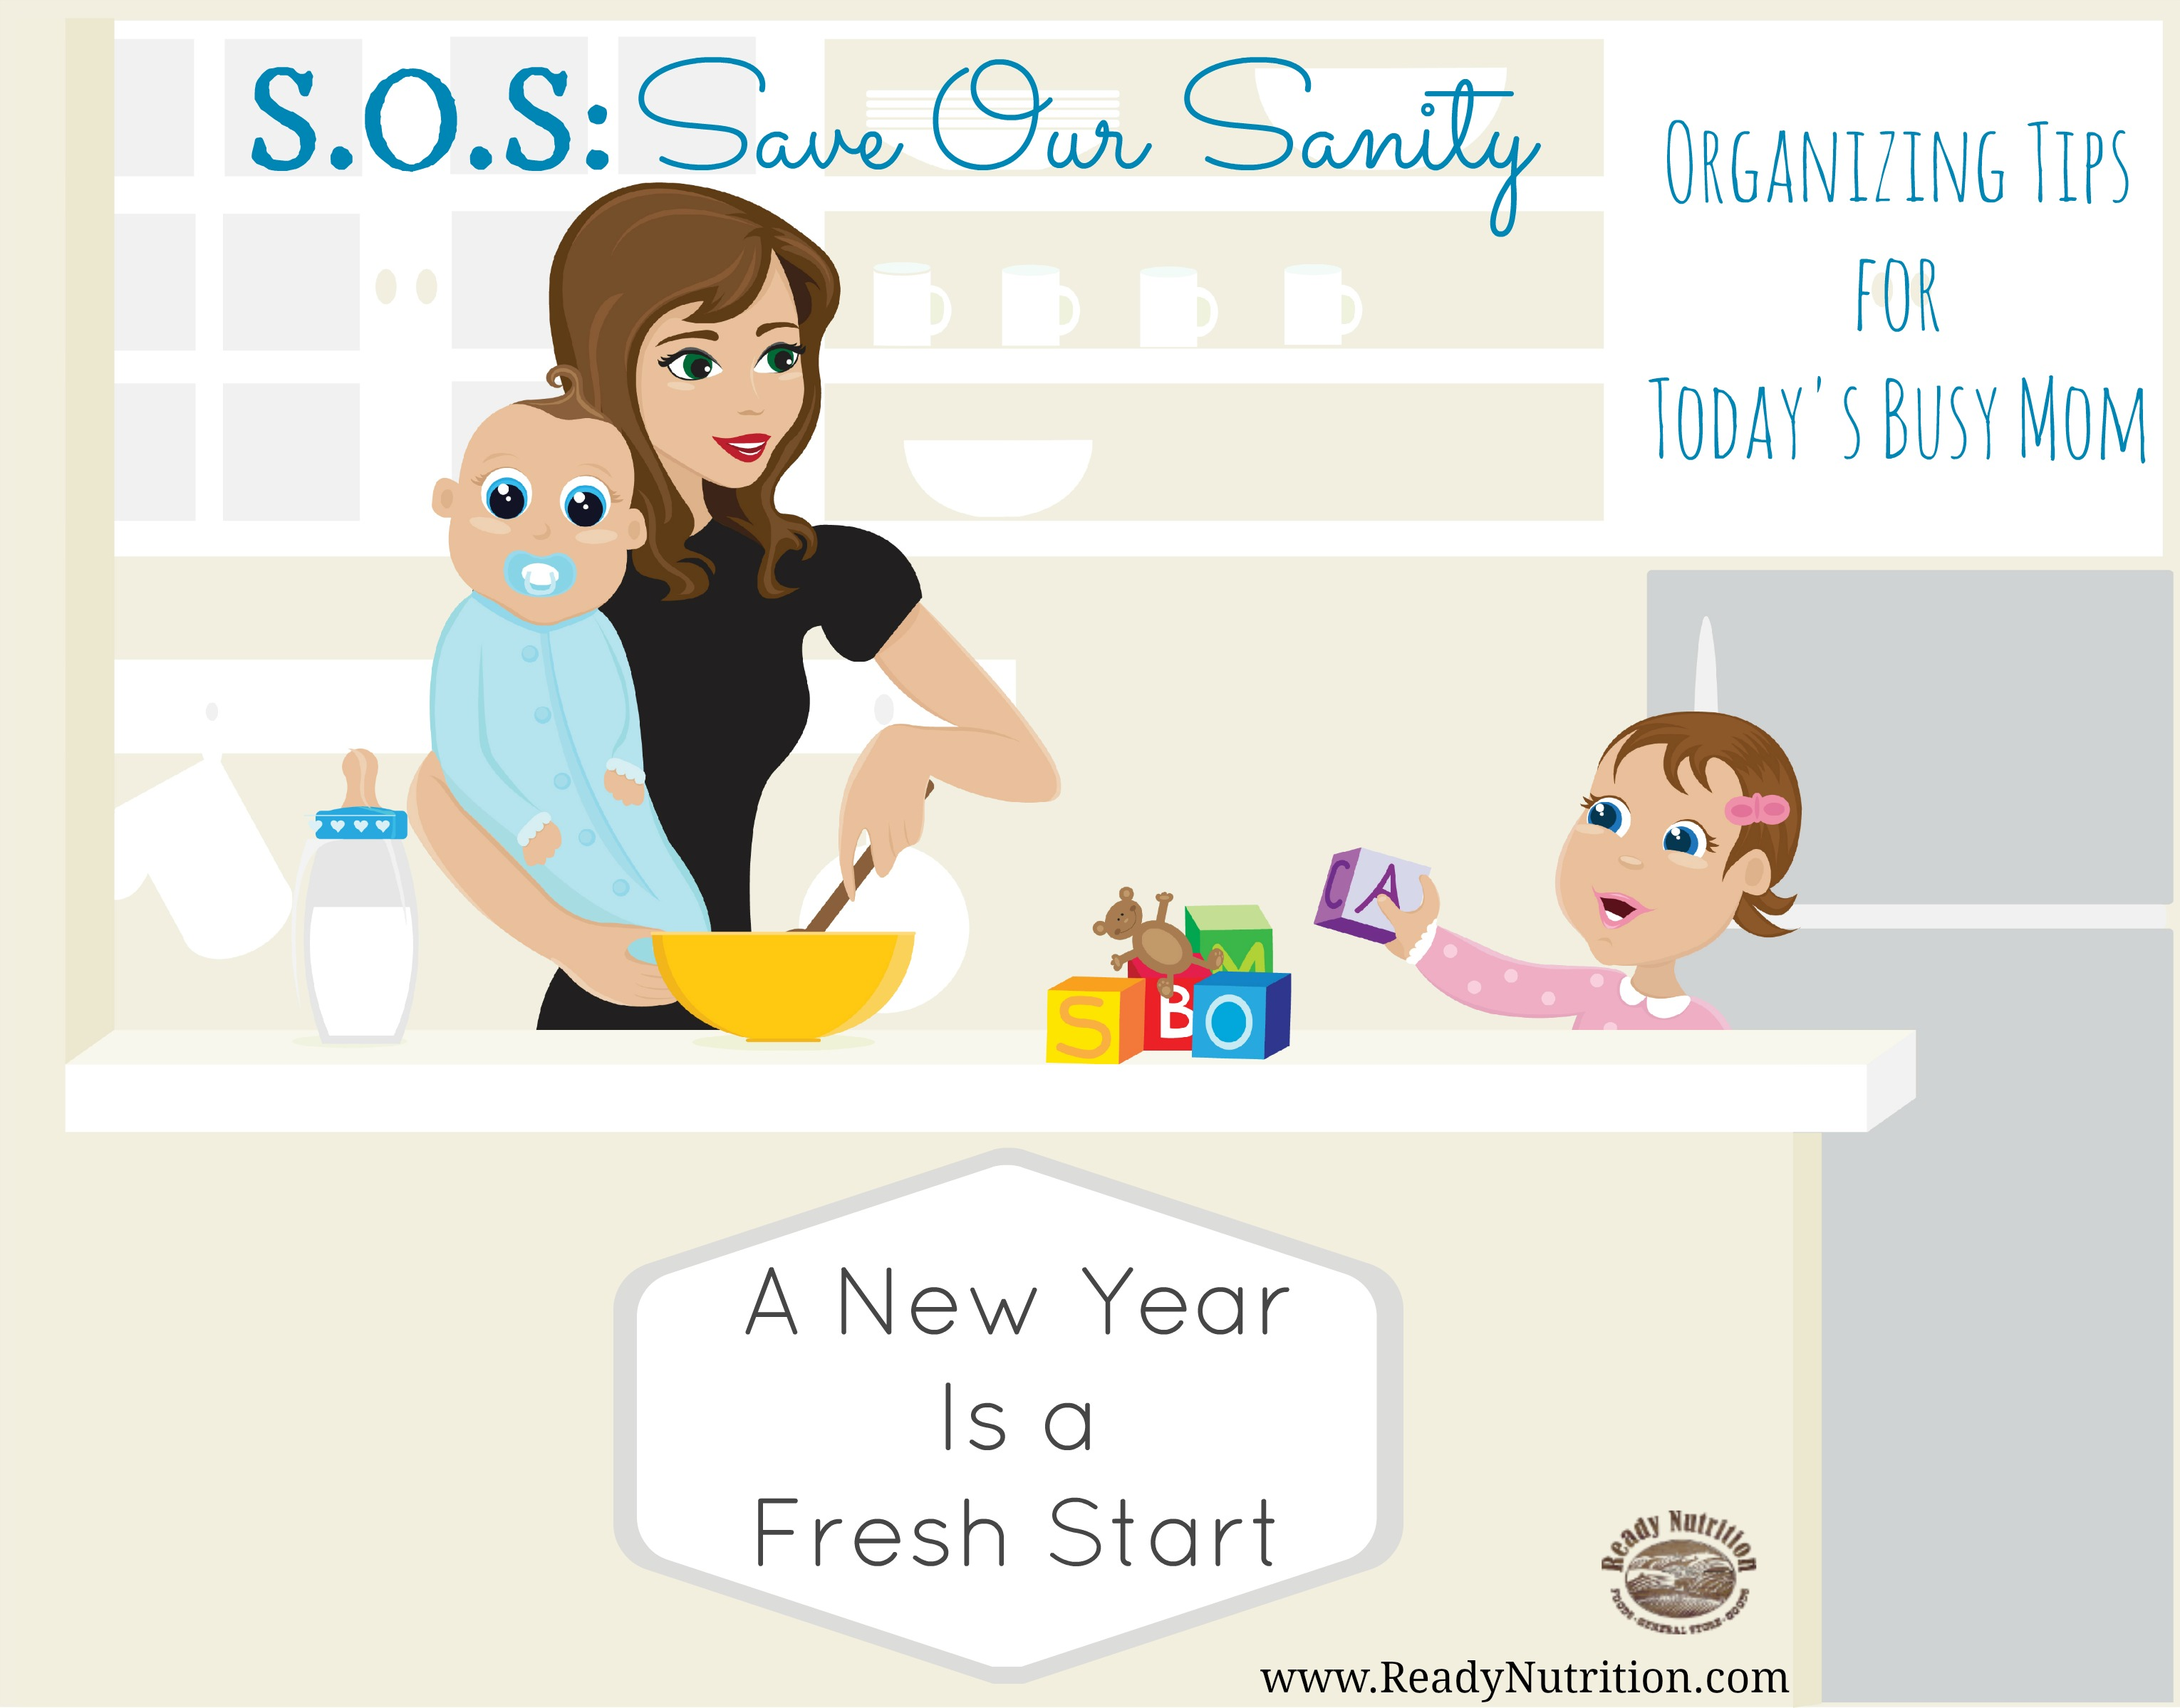 SOS: Save Our Sanity: A New Year Is a Fresh Start